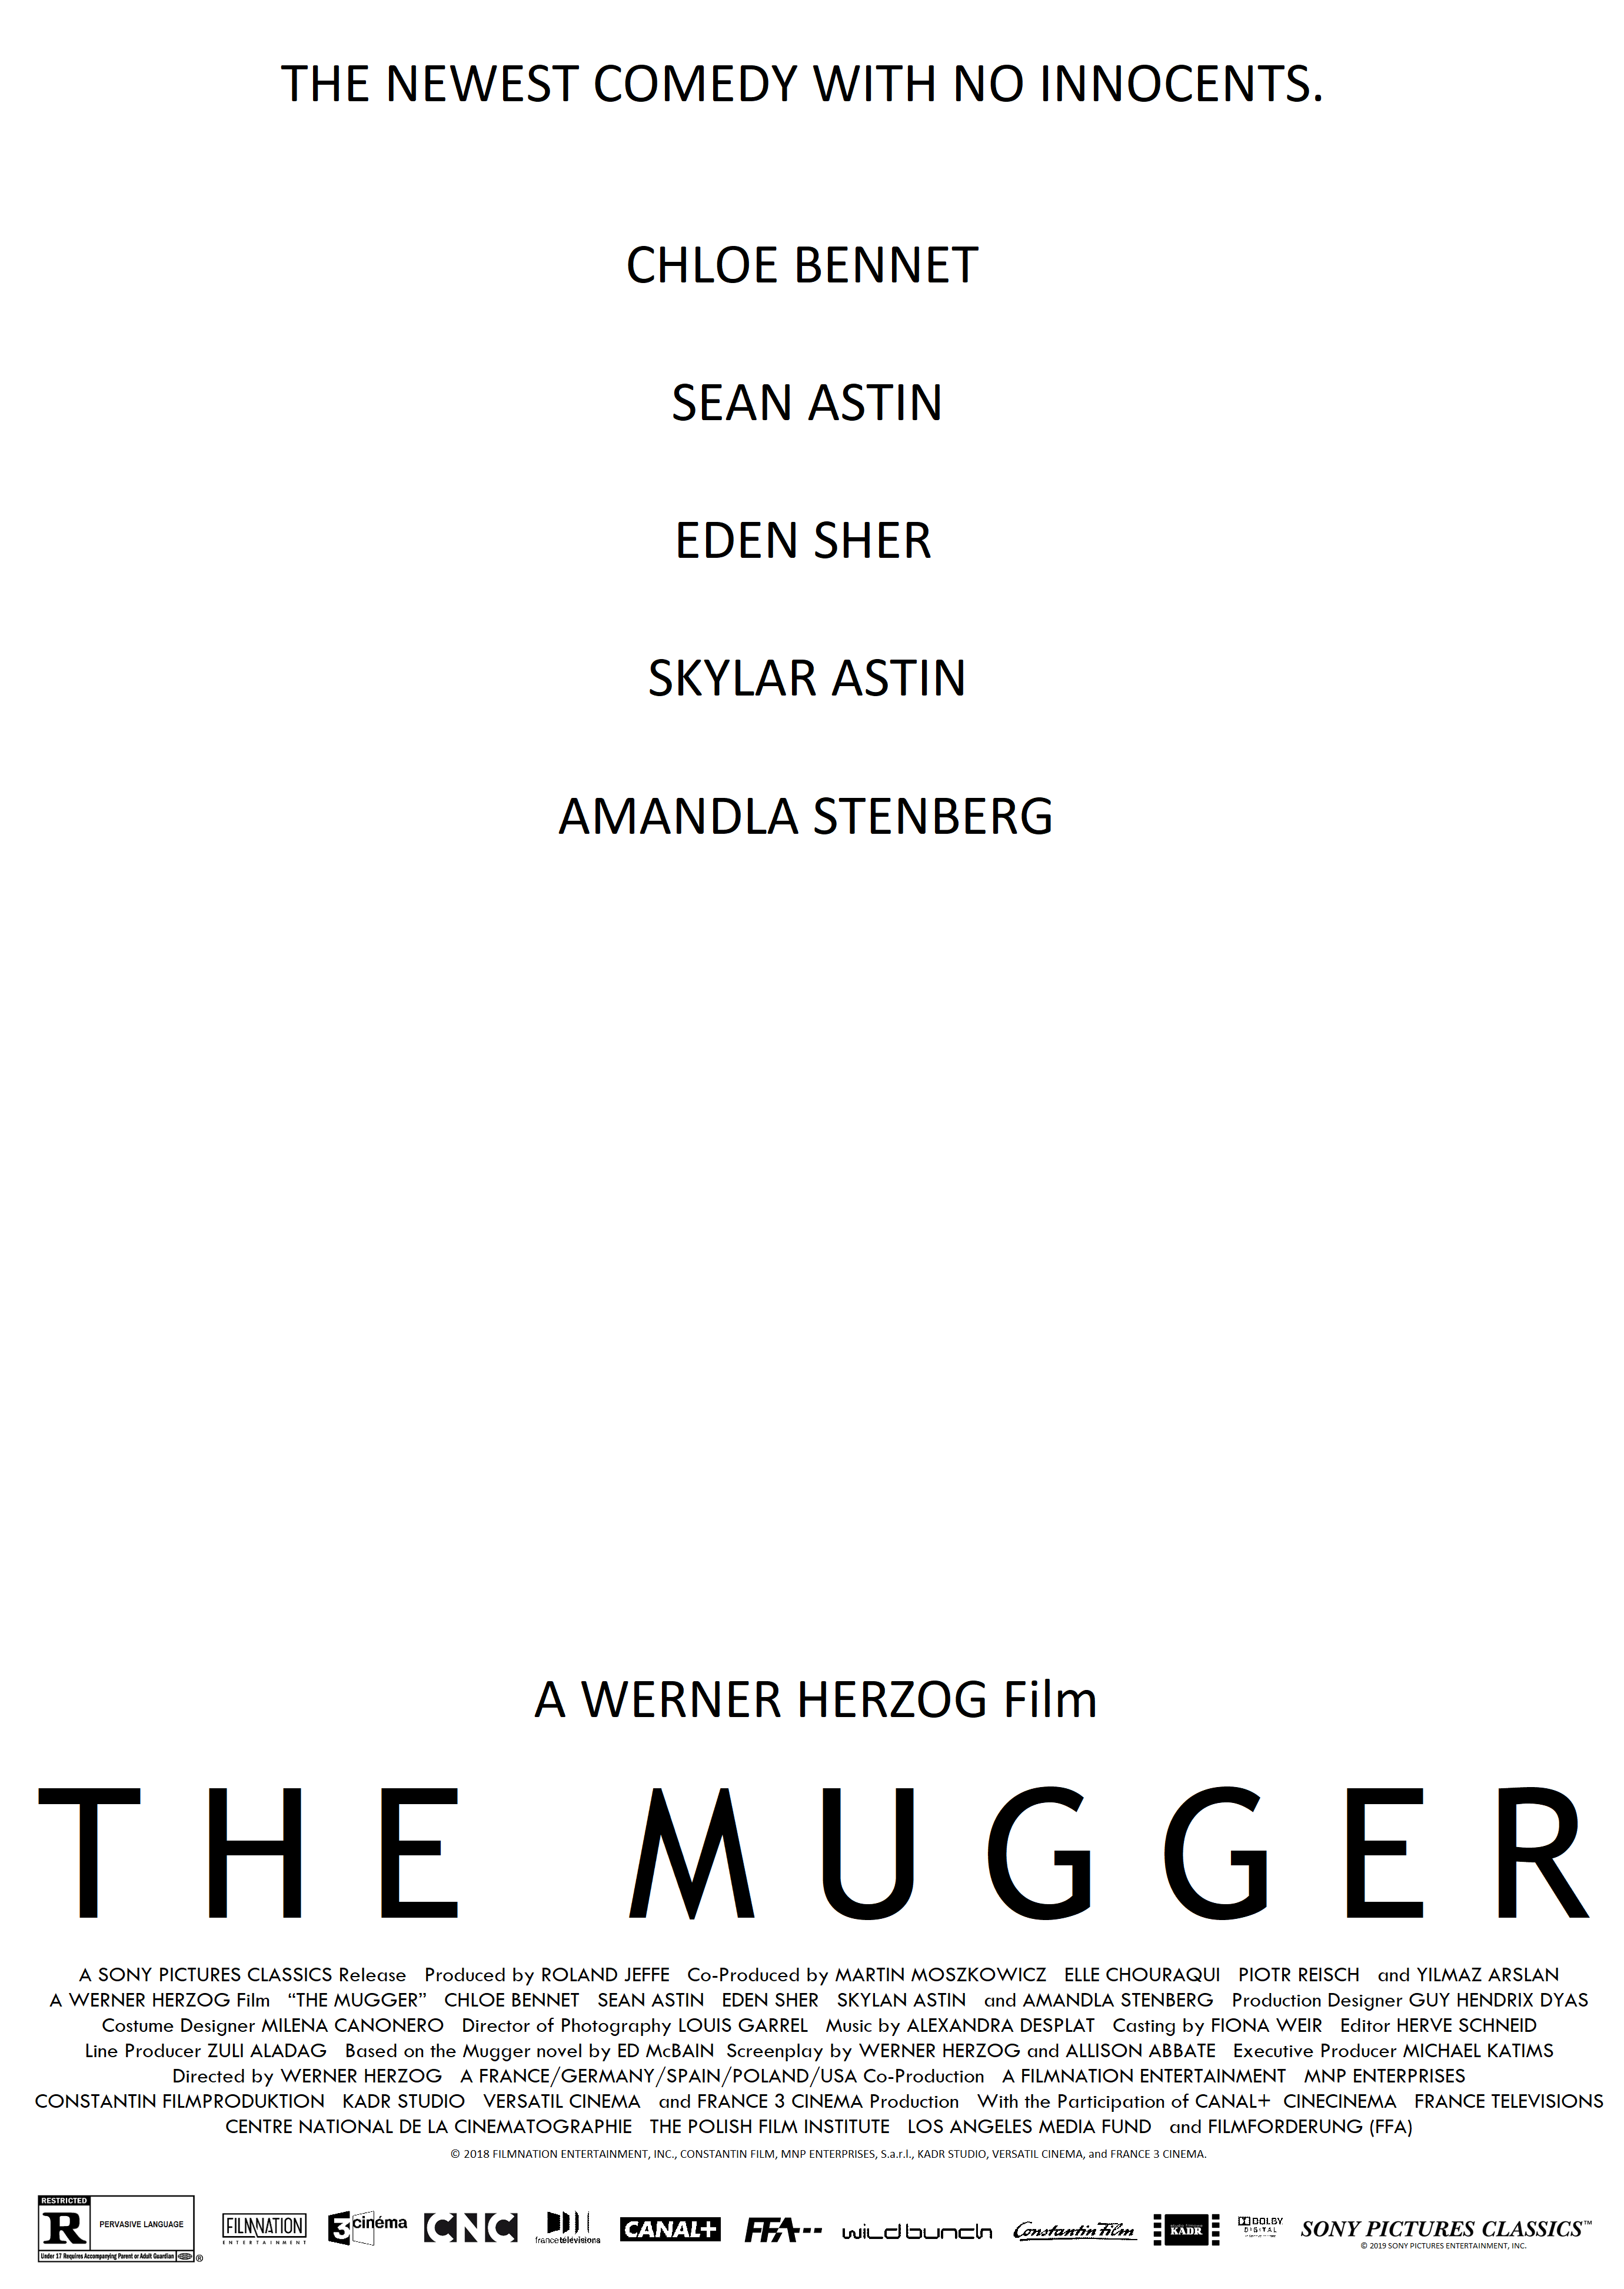 The Mugger (film)